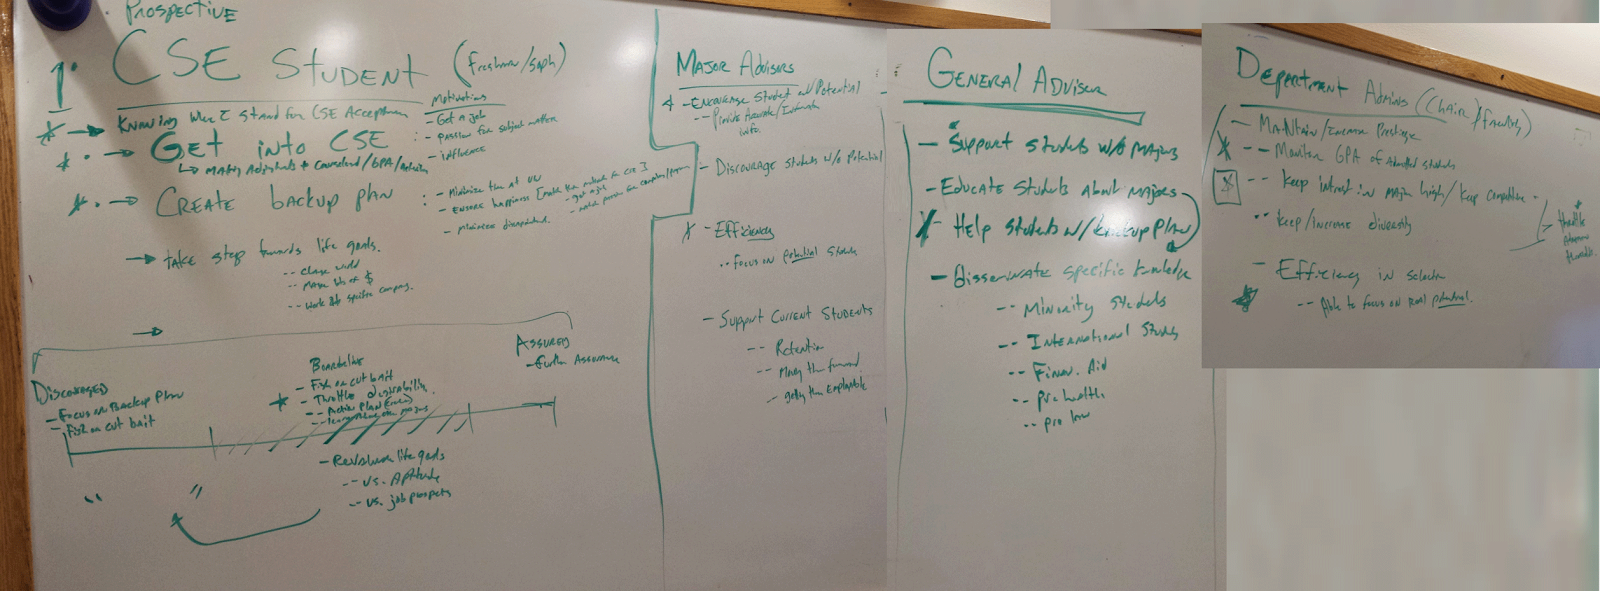 Whiteboardng Audiences and Goals